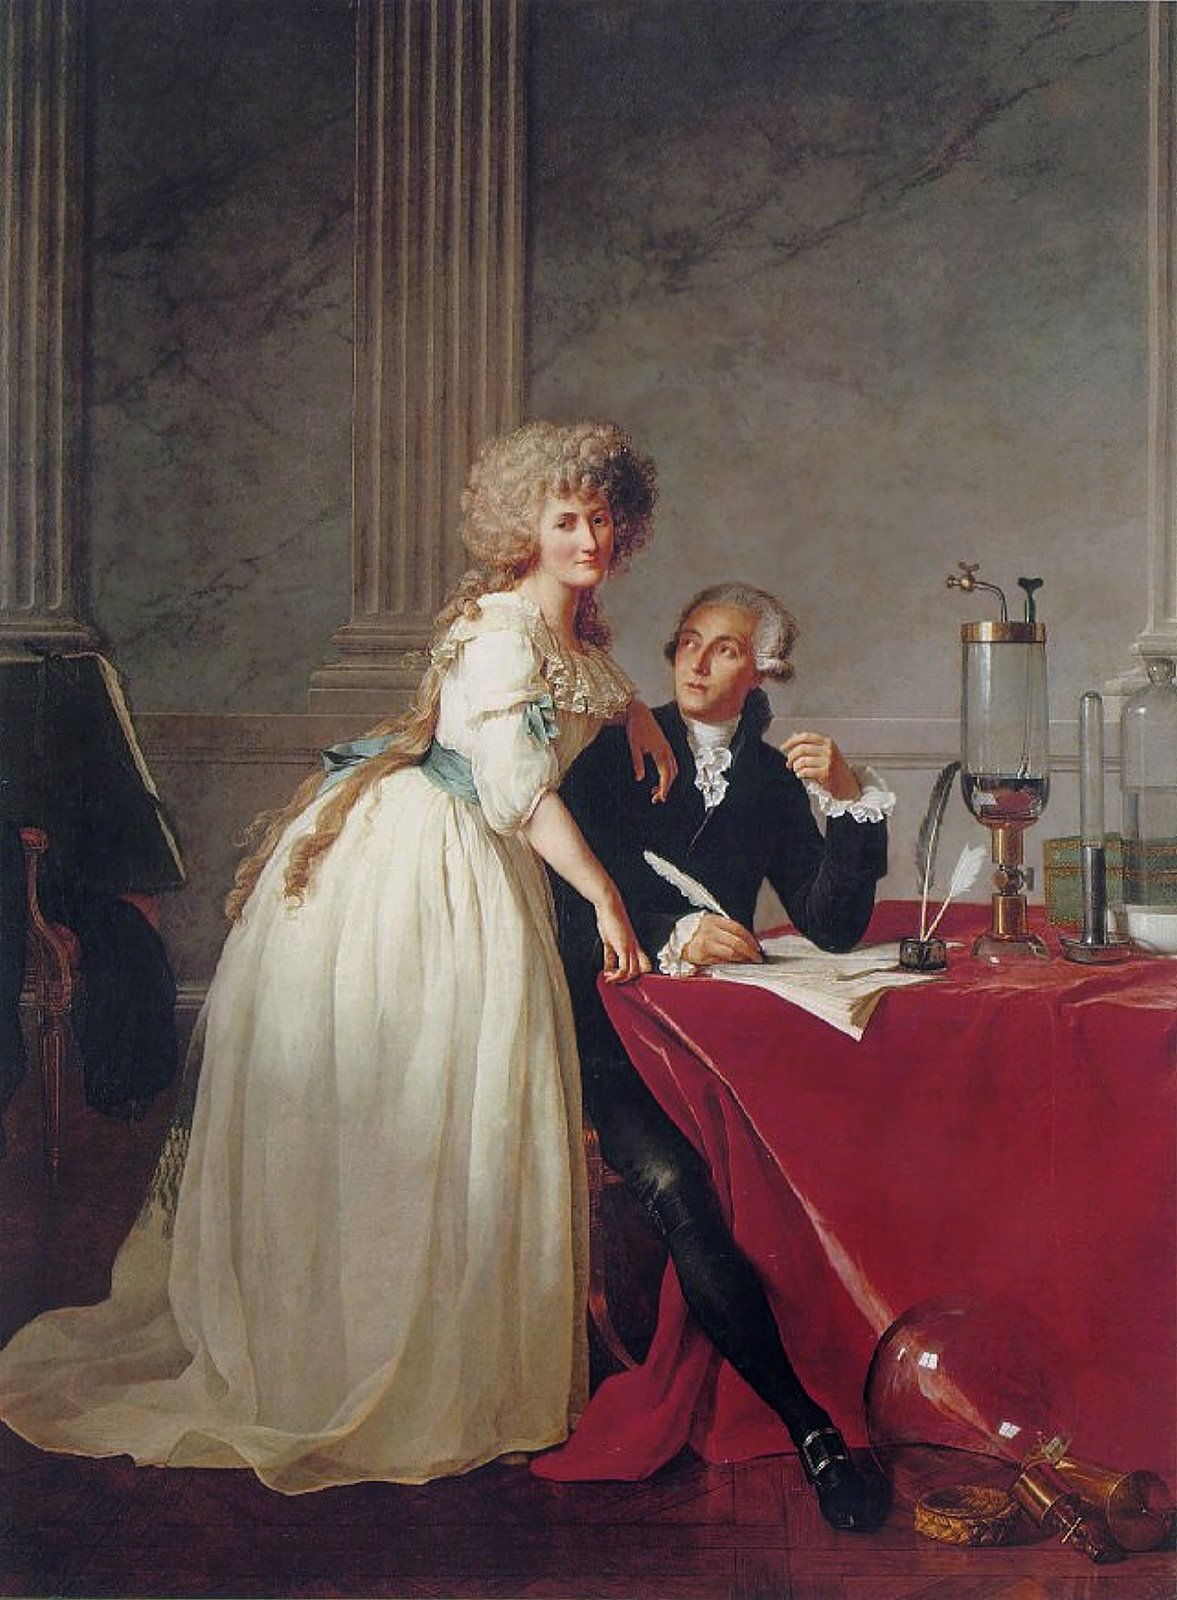 http://4.bp.blogspot.com/-dpI9IwyRp3c/TWq0V52Az3I/AAAAAAAAArM/QQIVXg-7BbU/s1600/David_-_Portrait_of_Monsieur_Lavoisier_and_His_Wife.jpg